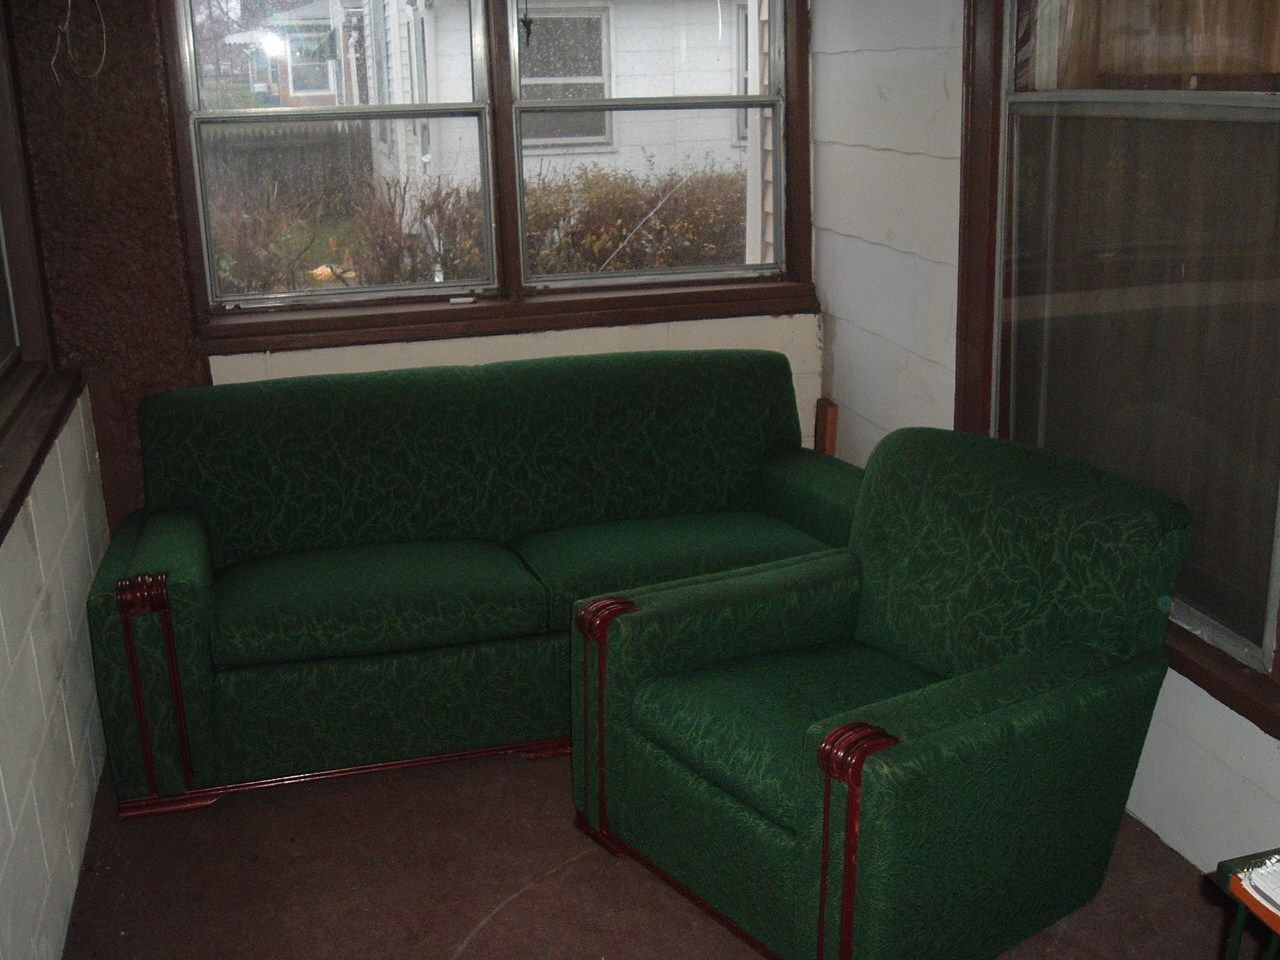 Art deco vintage leather sofa armchair - Details About Vintage 30 S Art Deco Sofa Couch And Chair